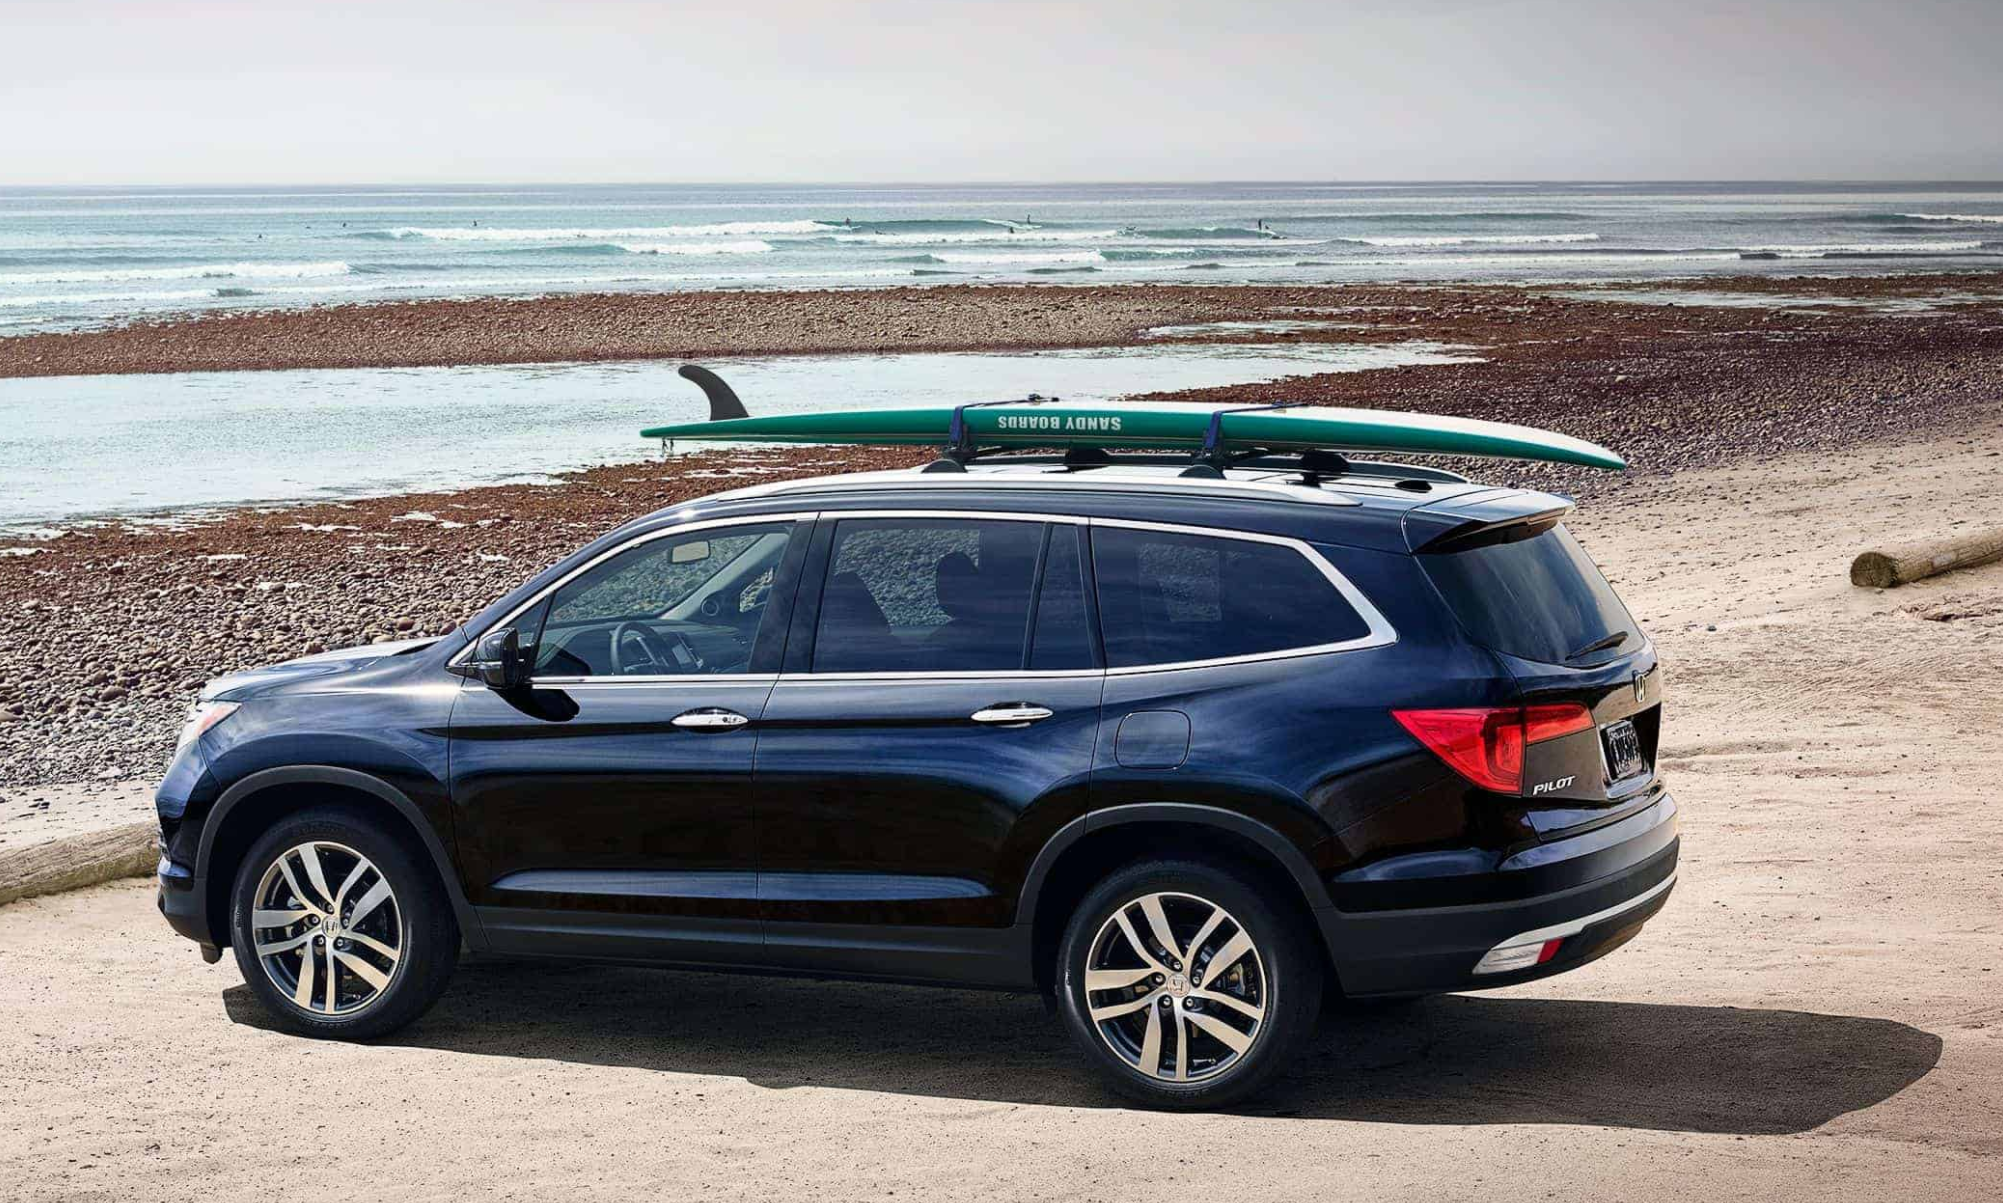 2018 honda pilot third auto for Honda pilot 2018 review